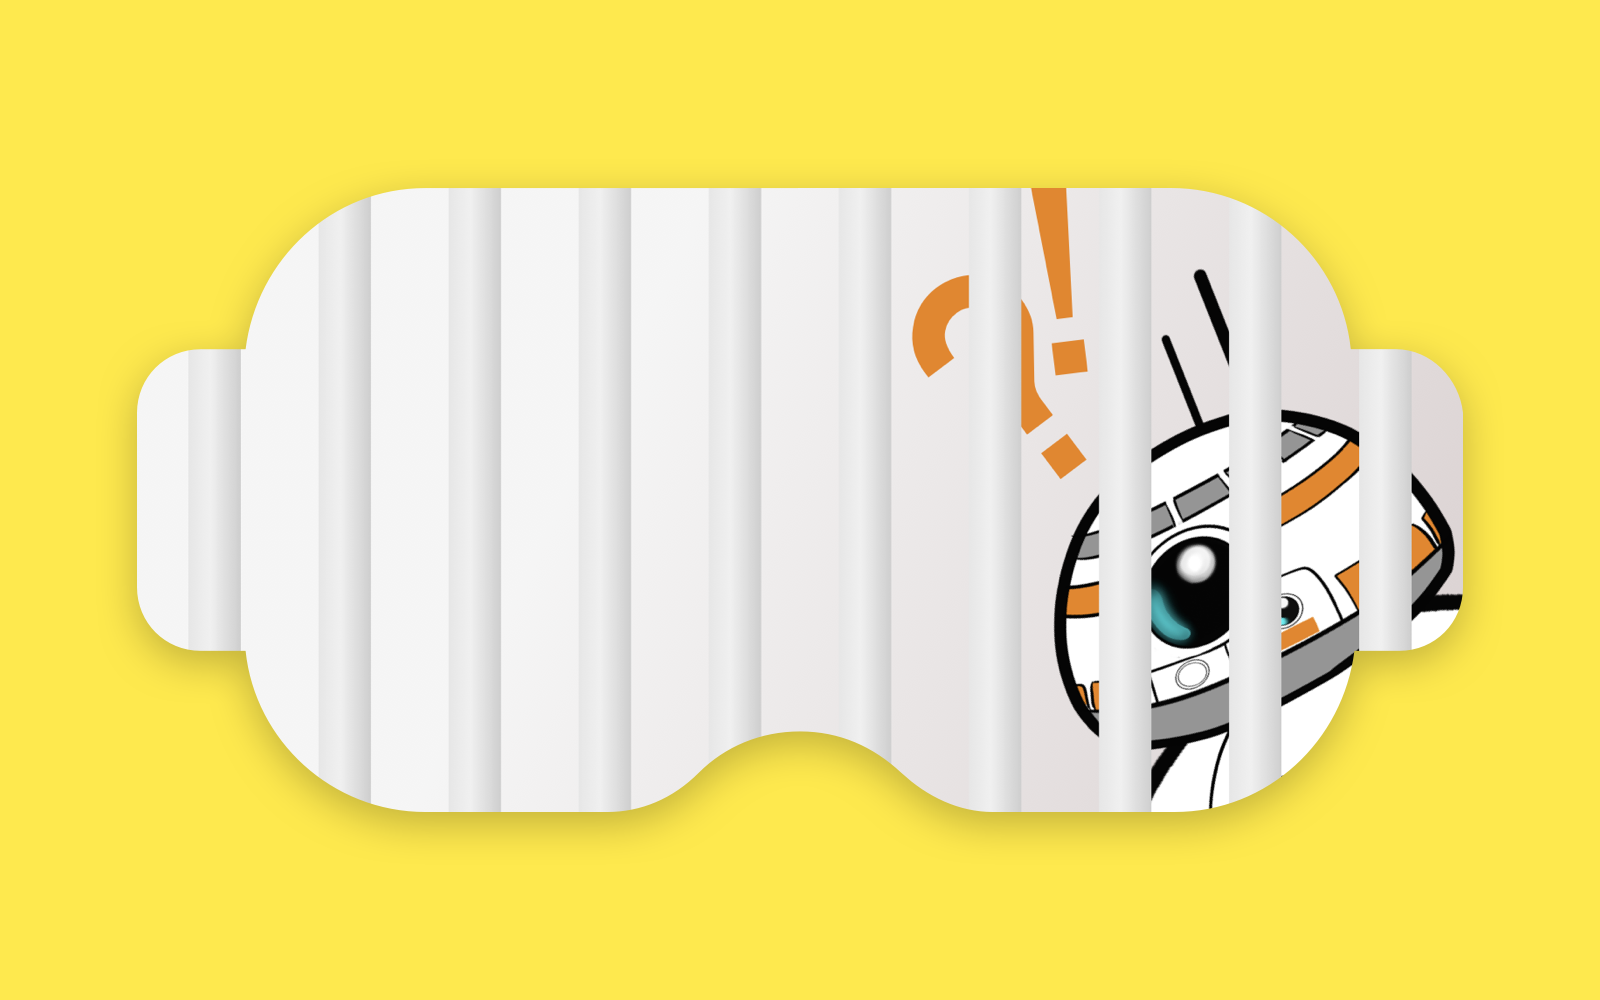 bb-8.png